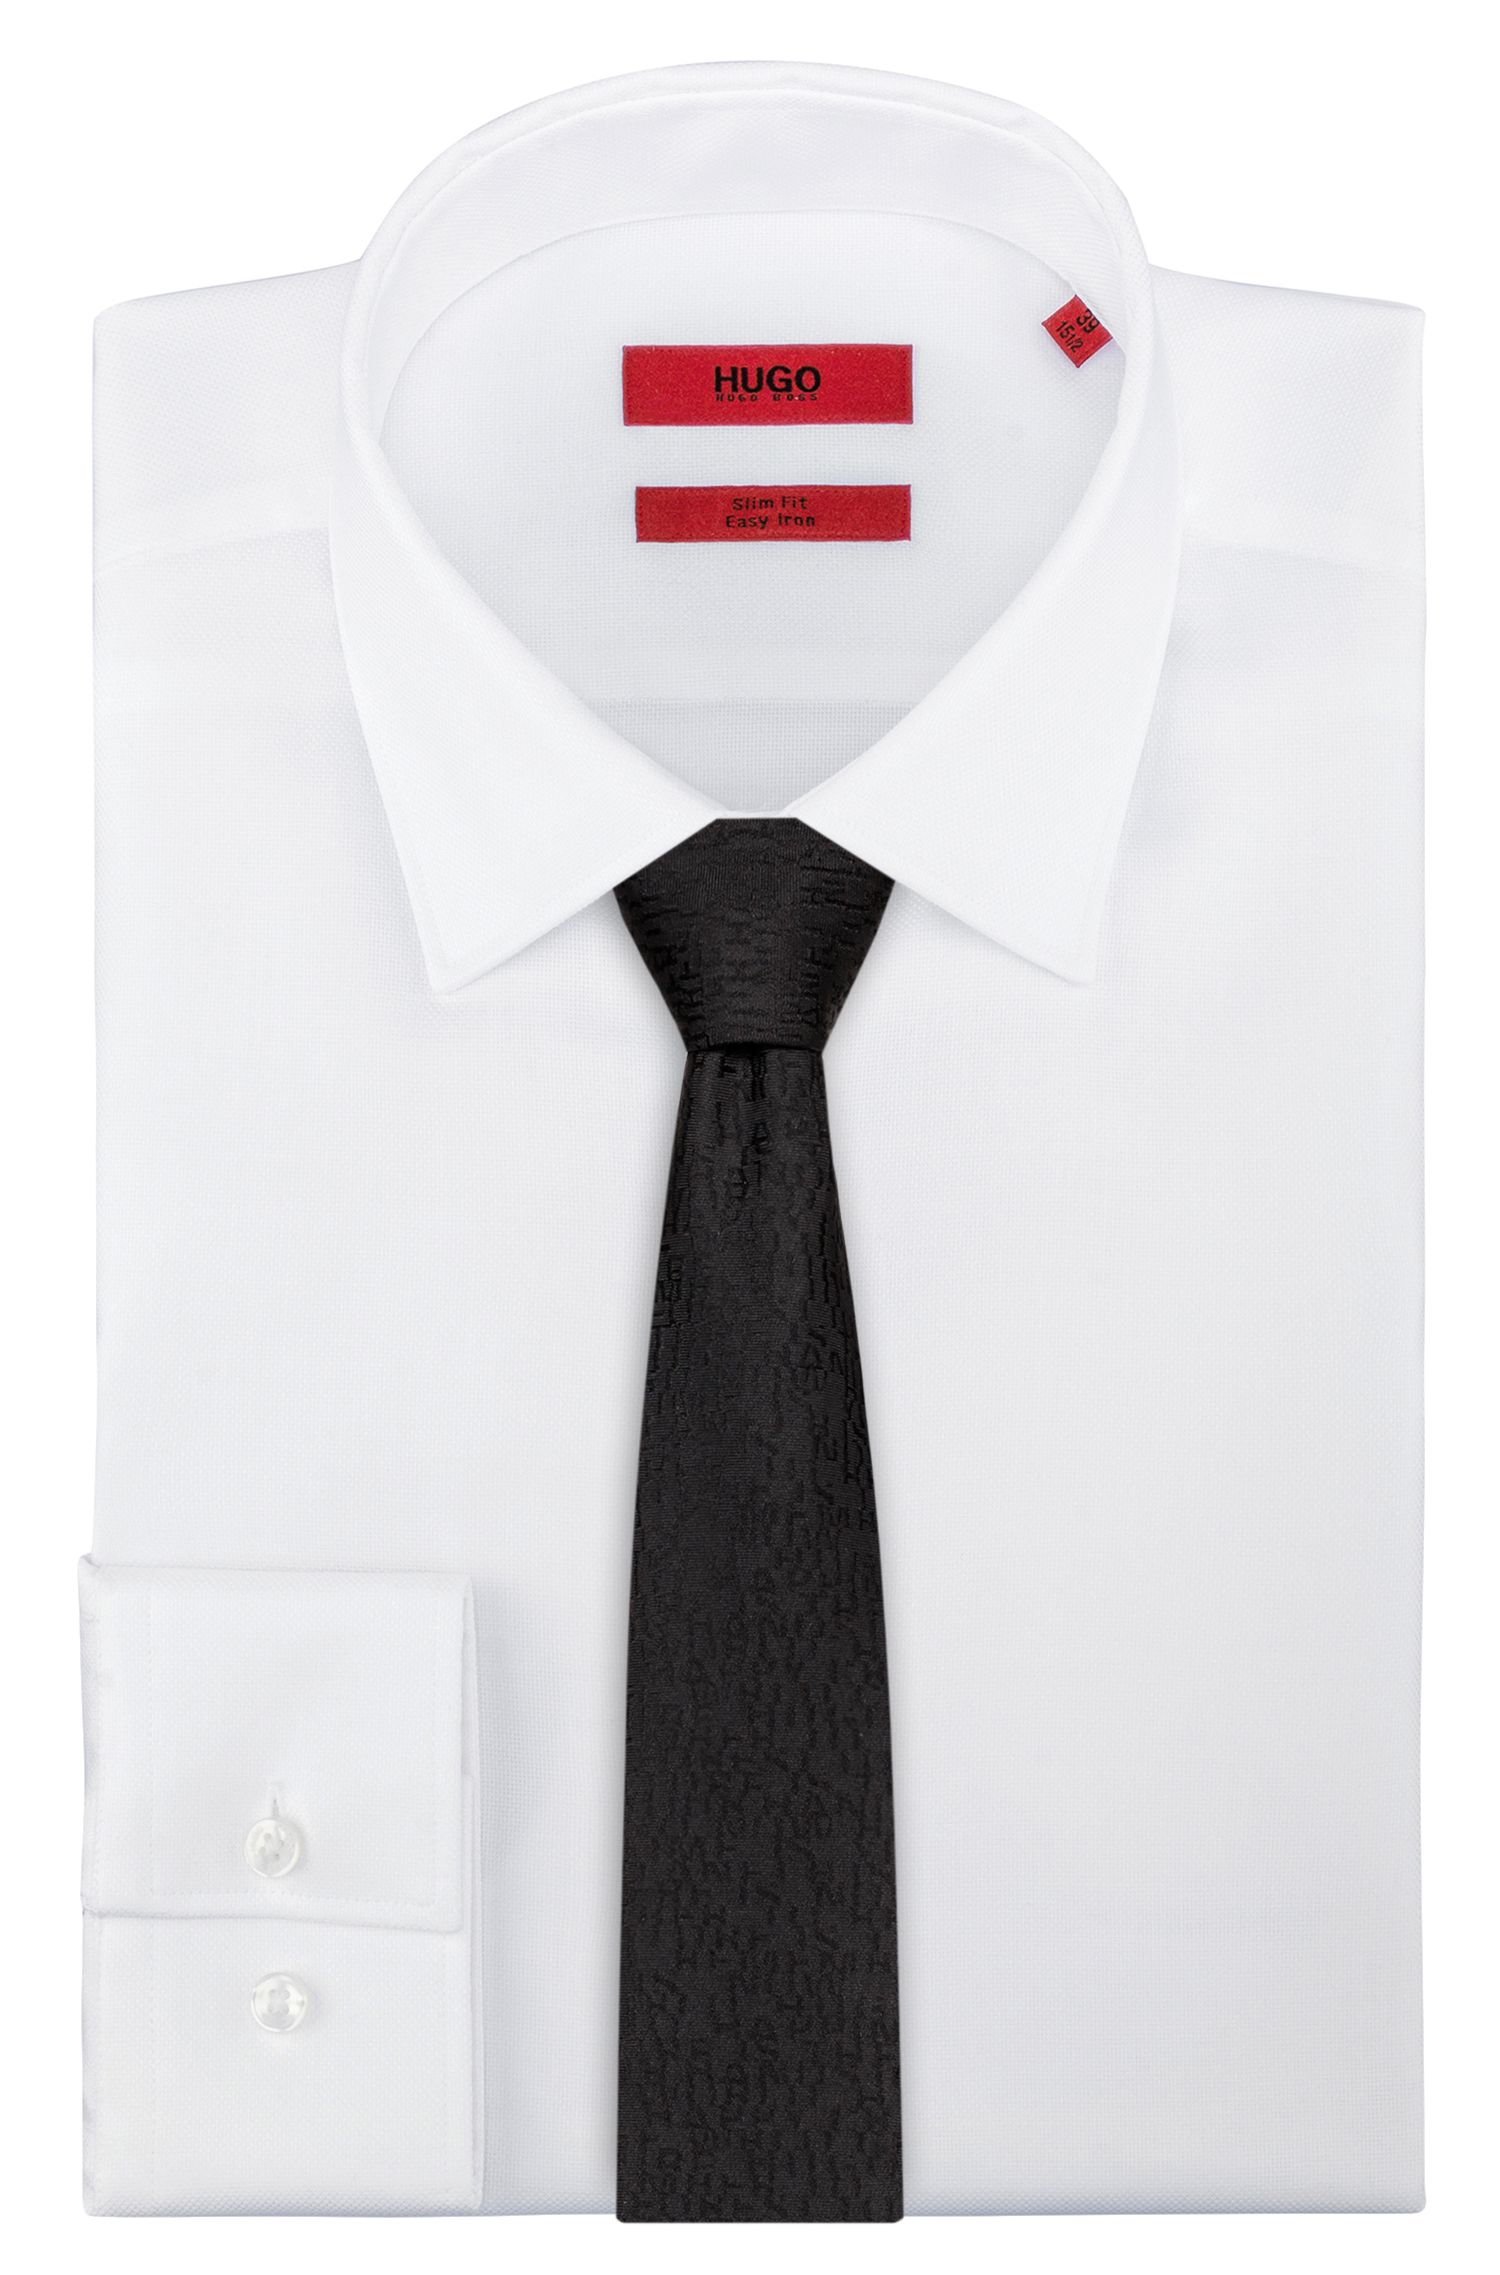 Silk-jacquard tie with logo detail, Black